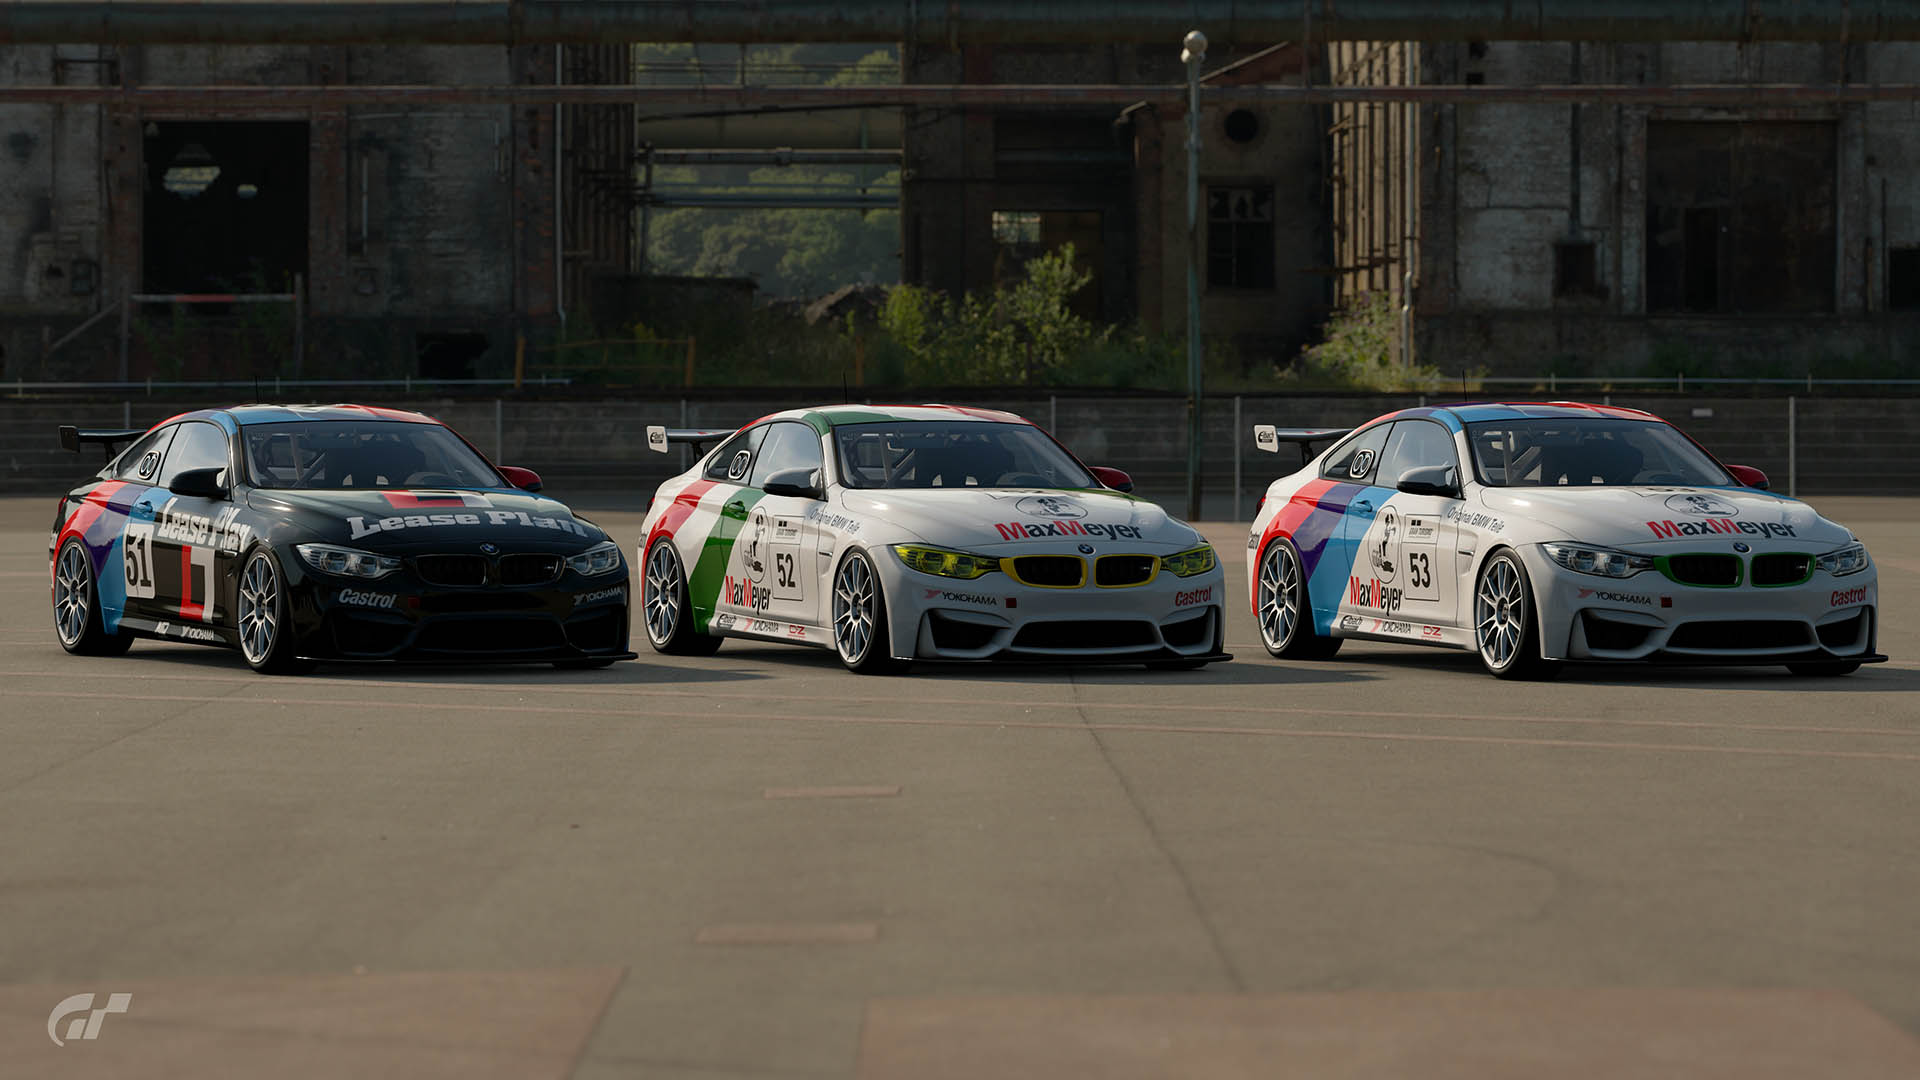 Team Bigazzi 1988 ETCC BMW M4 Liveries